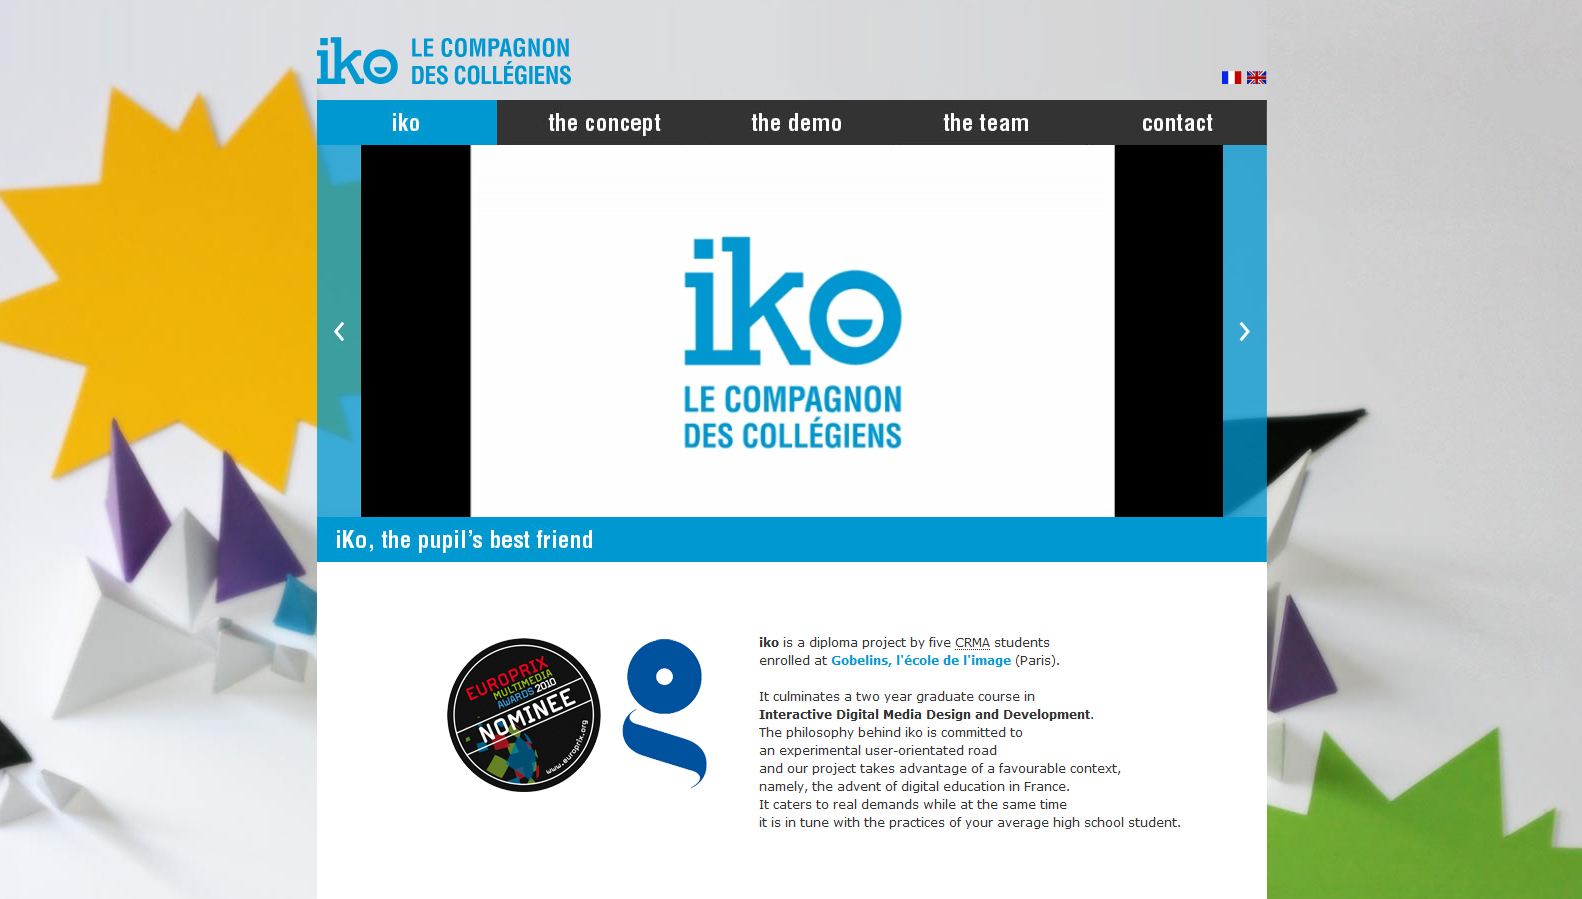 iko-website-screenshot-1